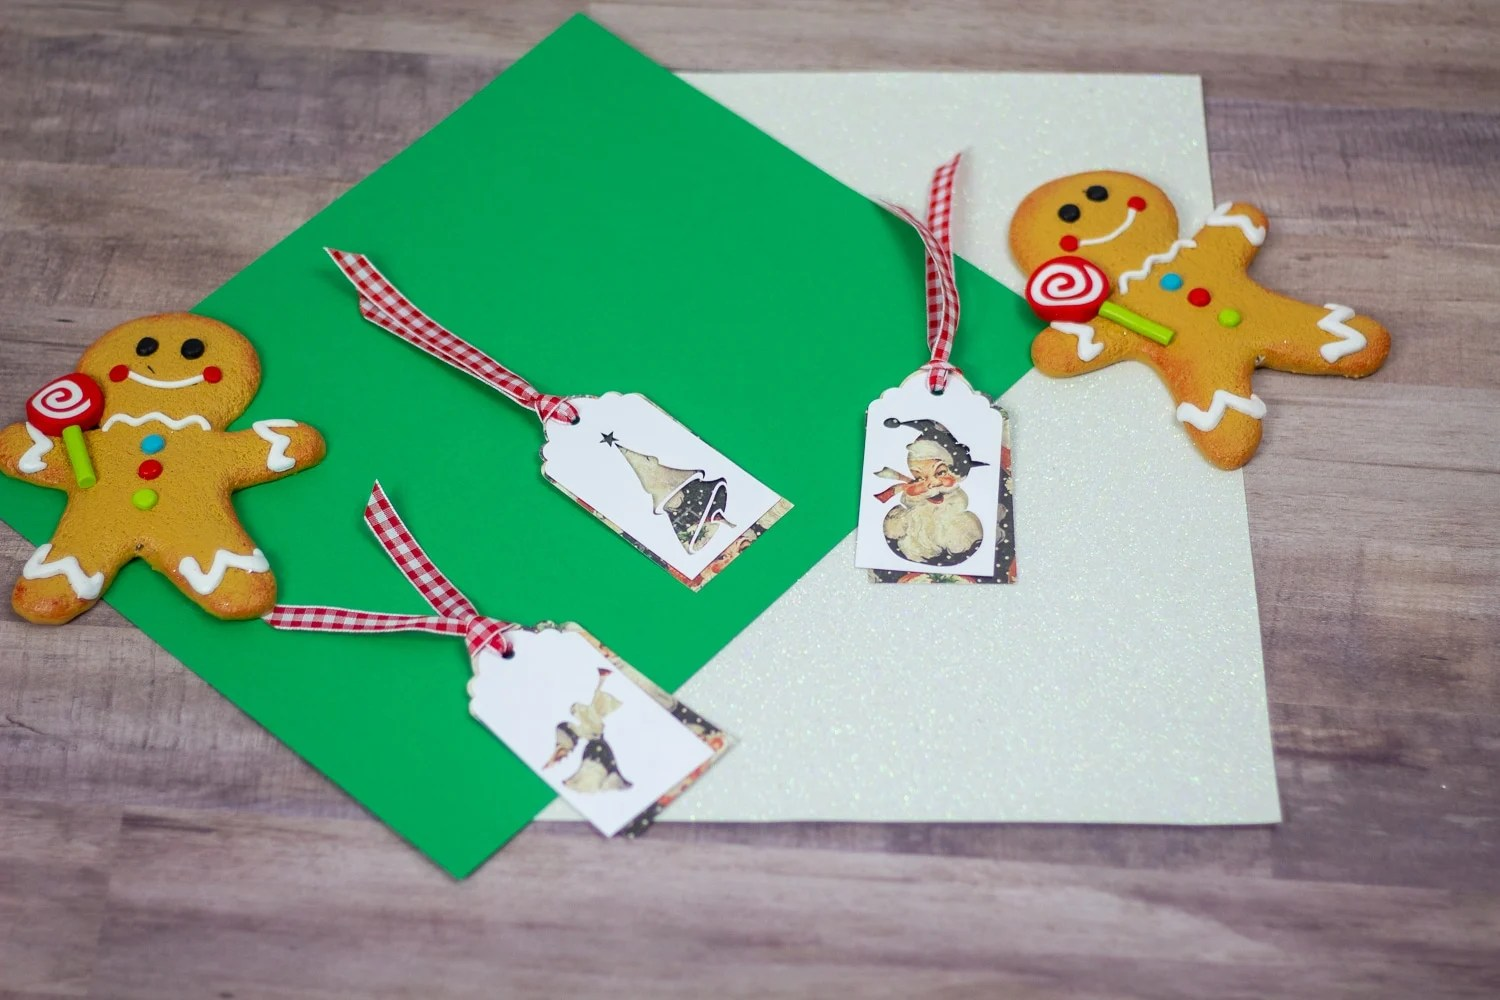 Image of gingerbread men with Christmas Gift Tags that have Christmas graphics on them.